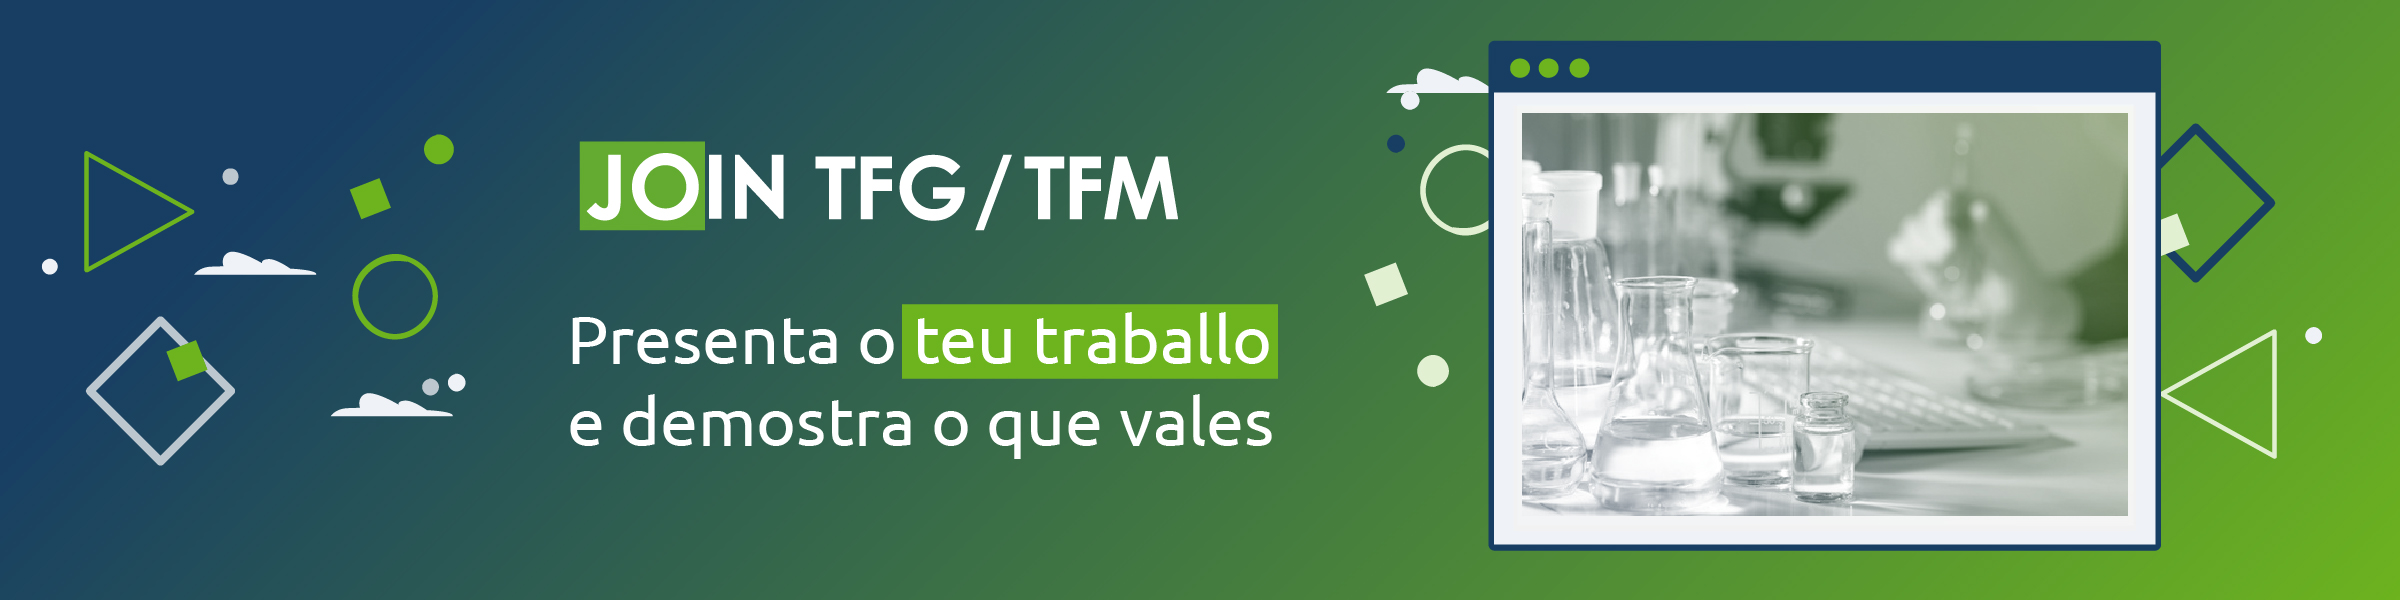 JOIN TFG/TFM